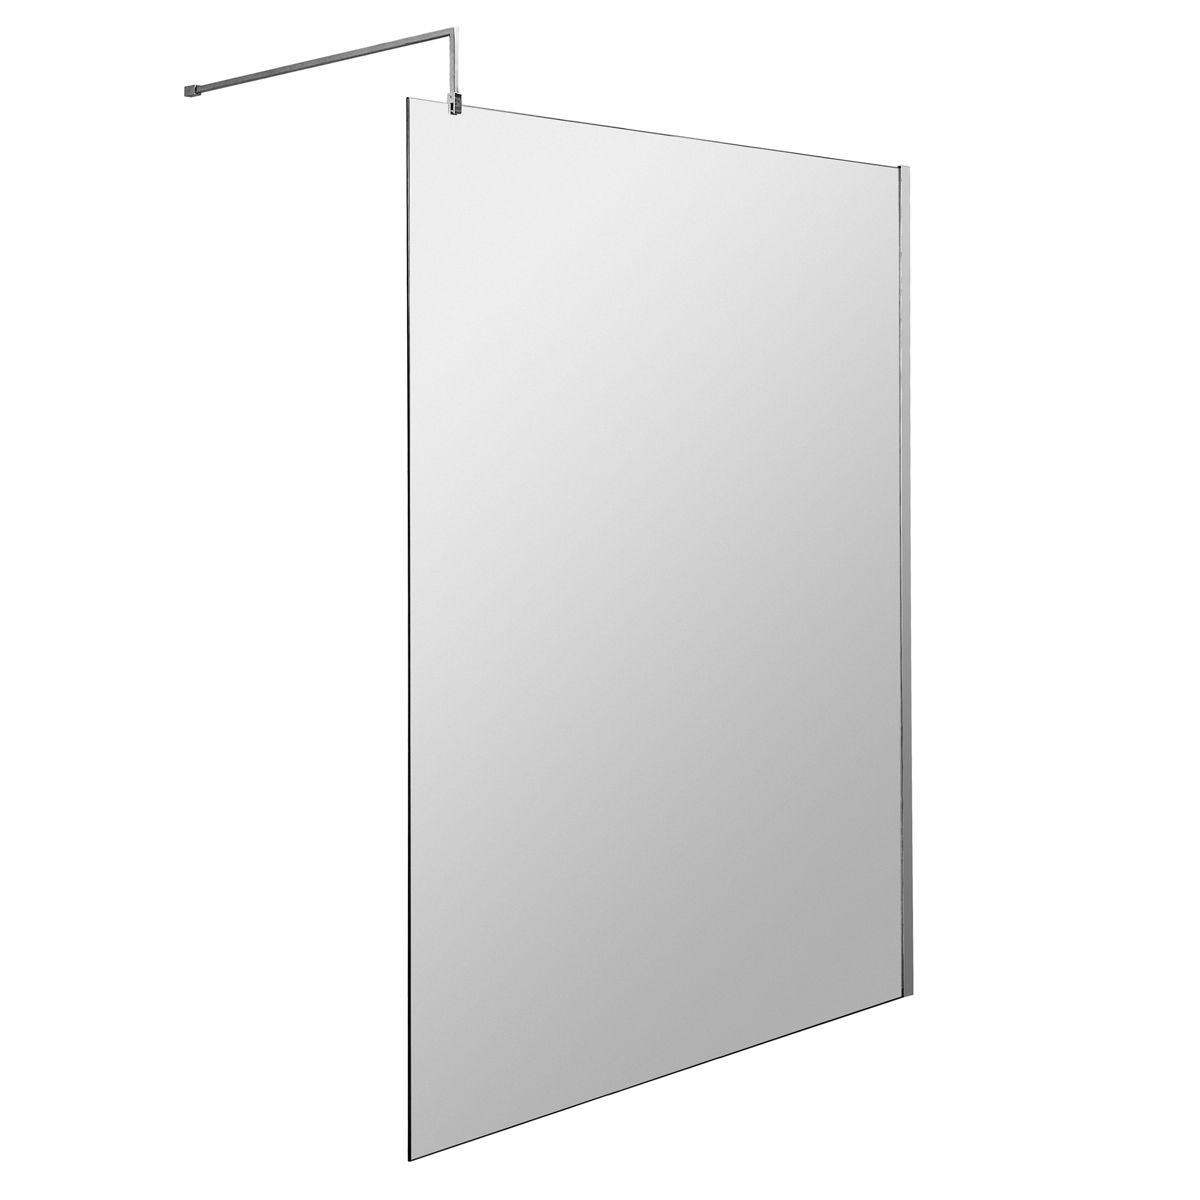 1200mm Wetroom Screen